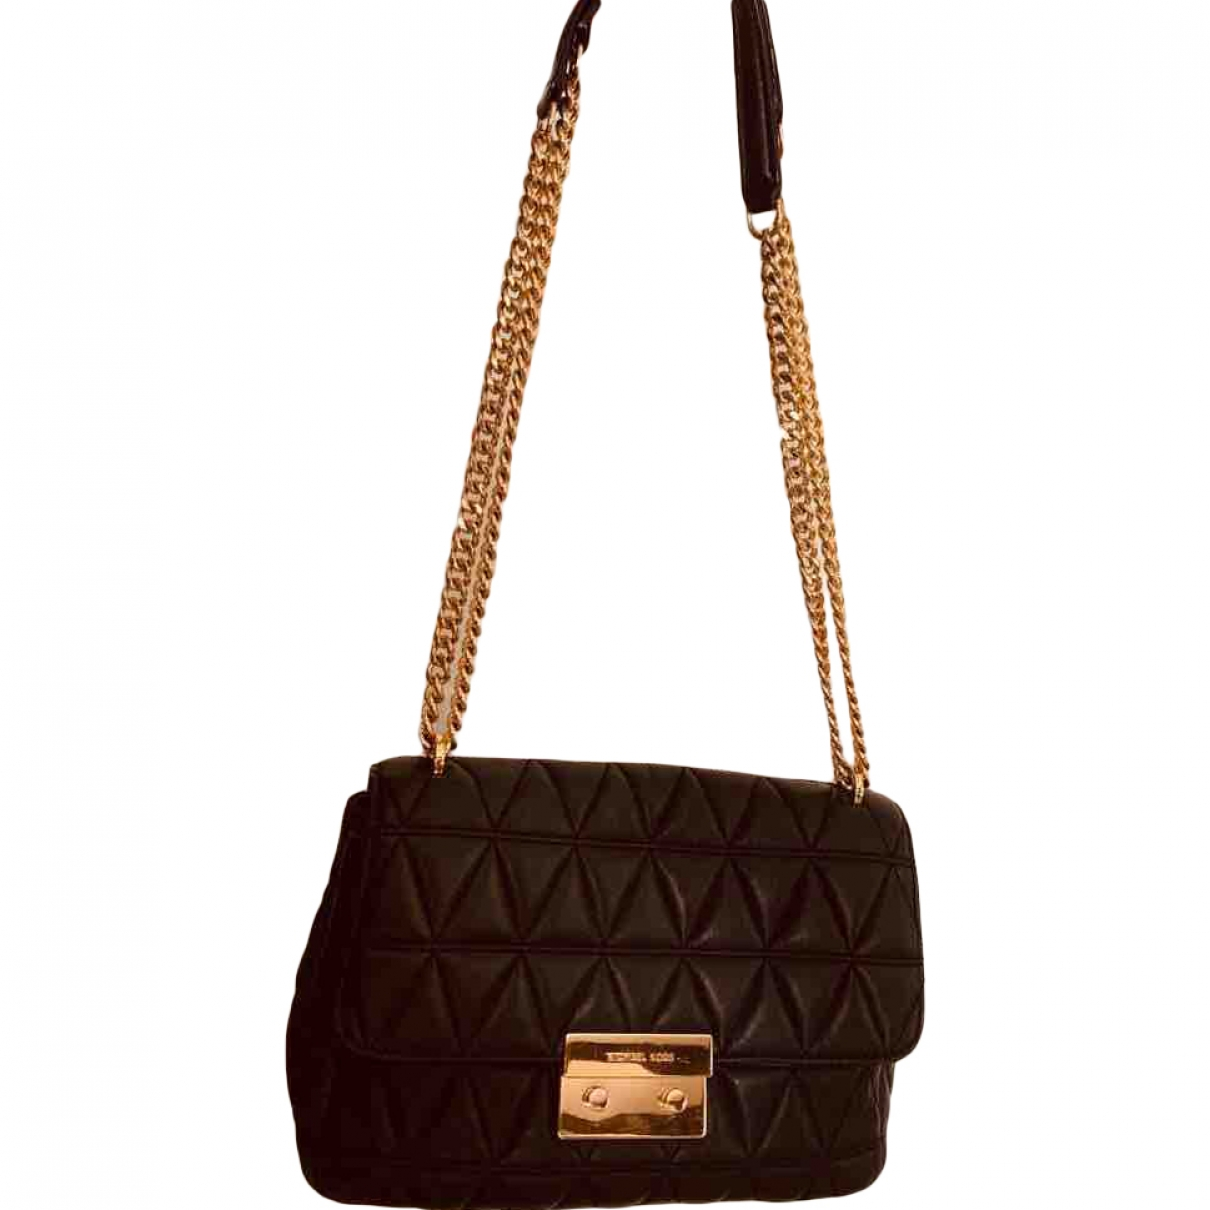 Michael Kors \N Black Leather handbag for Women \N